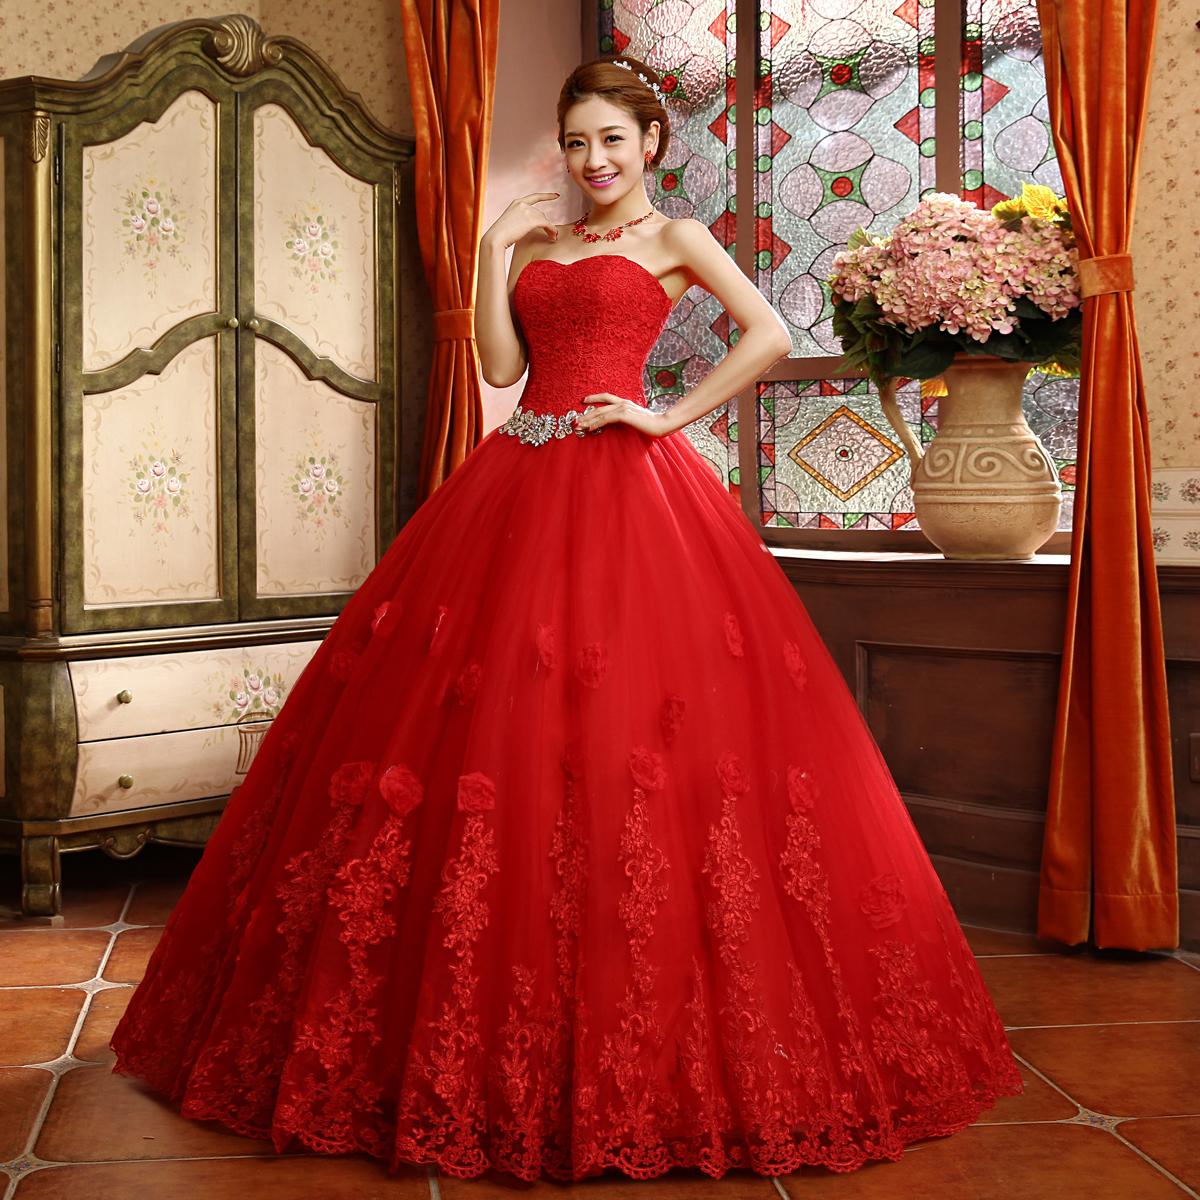 wedding dresses with sleeves online online wedding dresses Wedding Dresses With Sleeves Online 9